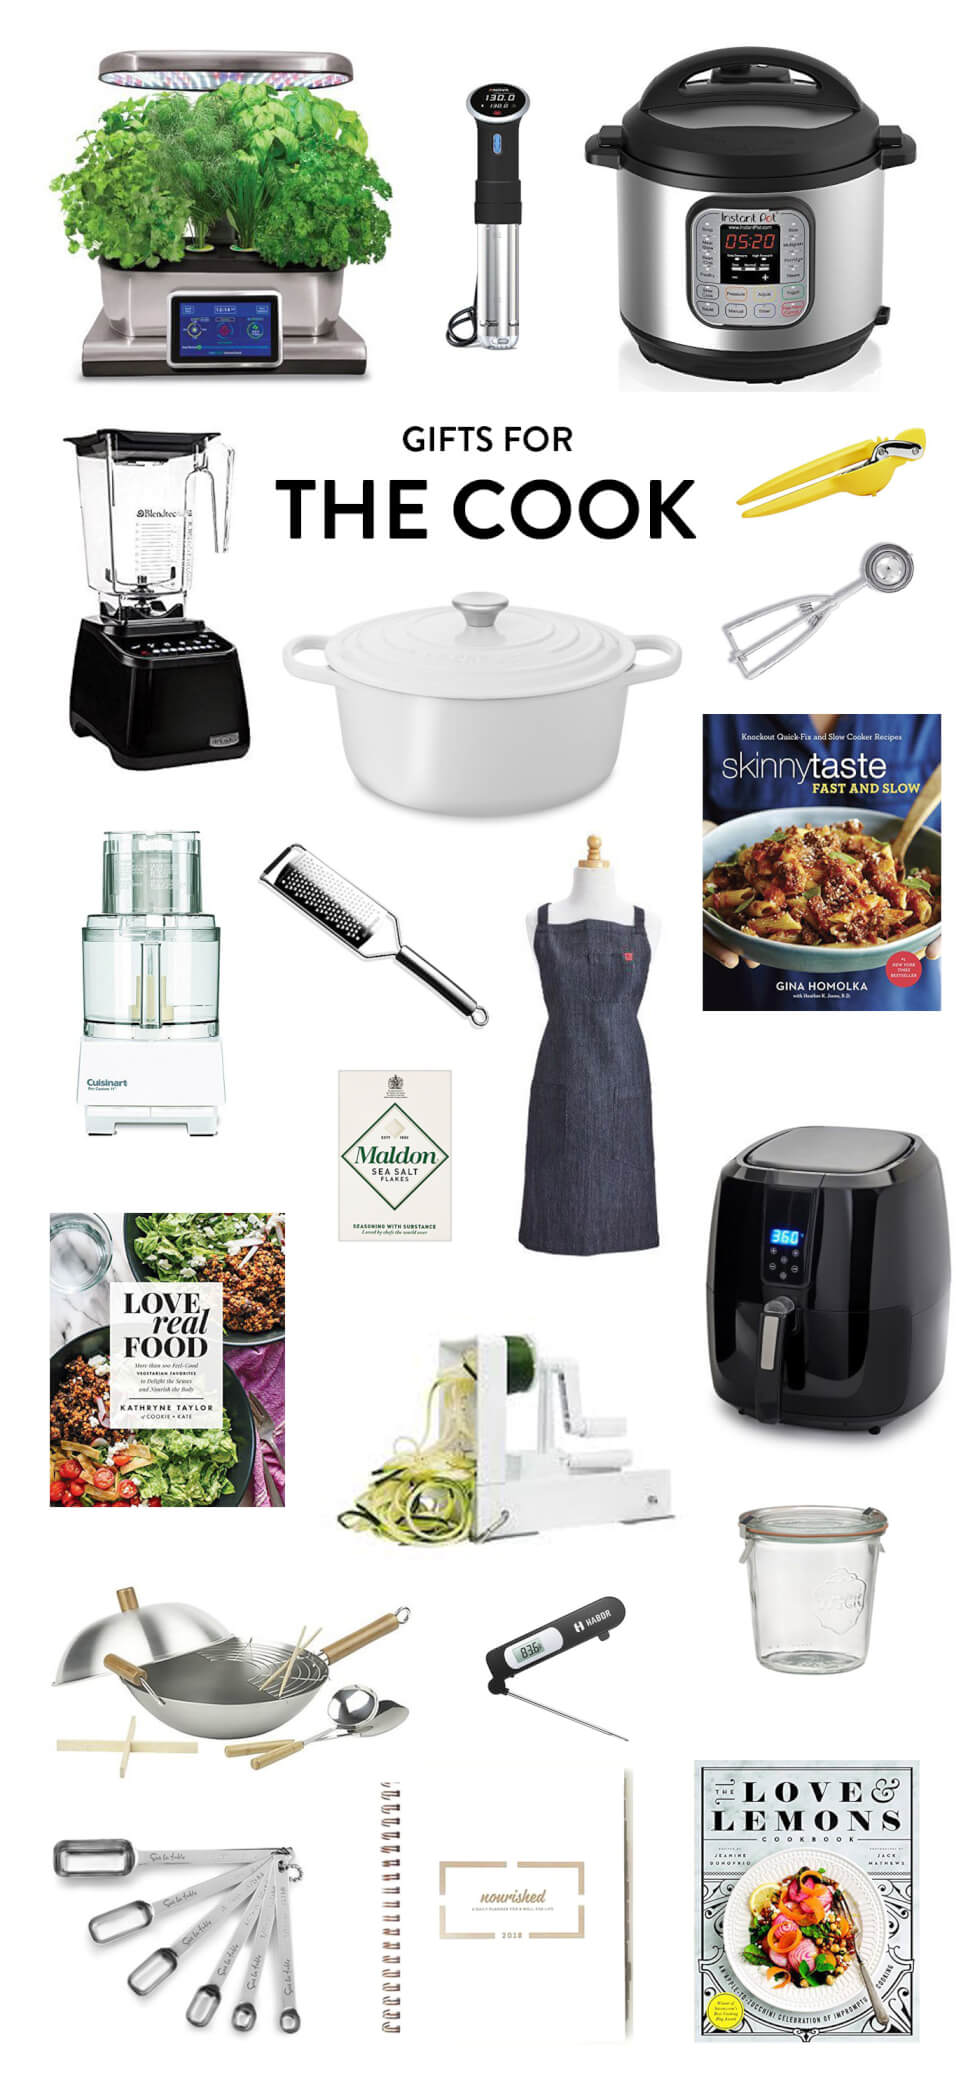 Perfect for the friend who loves to cook up a storm in the kitchen! Holiday gifting ideas include everything from an herb-growing kit, to a sous-vide cooker, to an instant pot pressure cooker, lemon juicer, cookie scoop, Le Creuset dutch oven, cookbooks, apron, air fryer, Weck jars, Nourished planner, measuring spoons, wok kit, food processor, Blendtec blender and more. | The Cook Gift Guide | Gimme Some Oven Holidays 2017